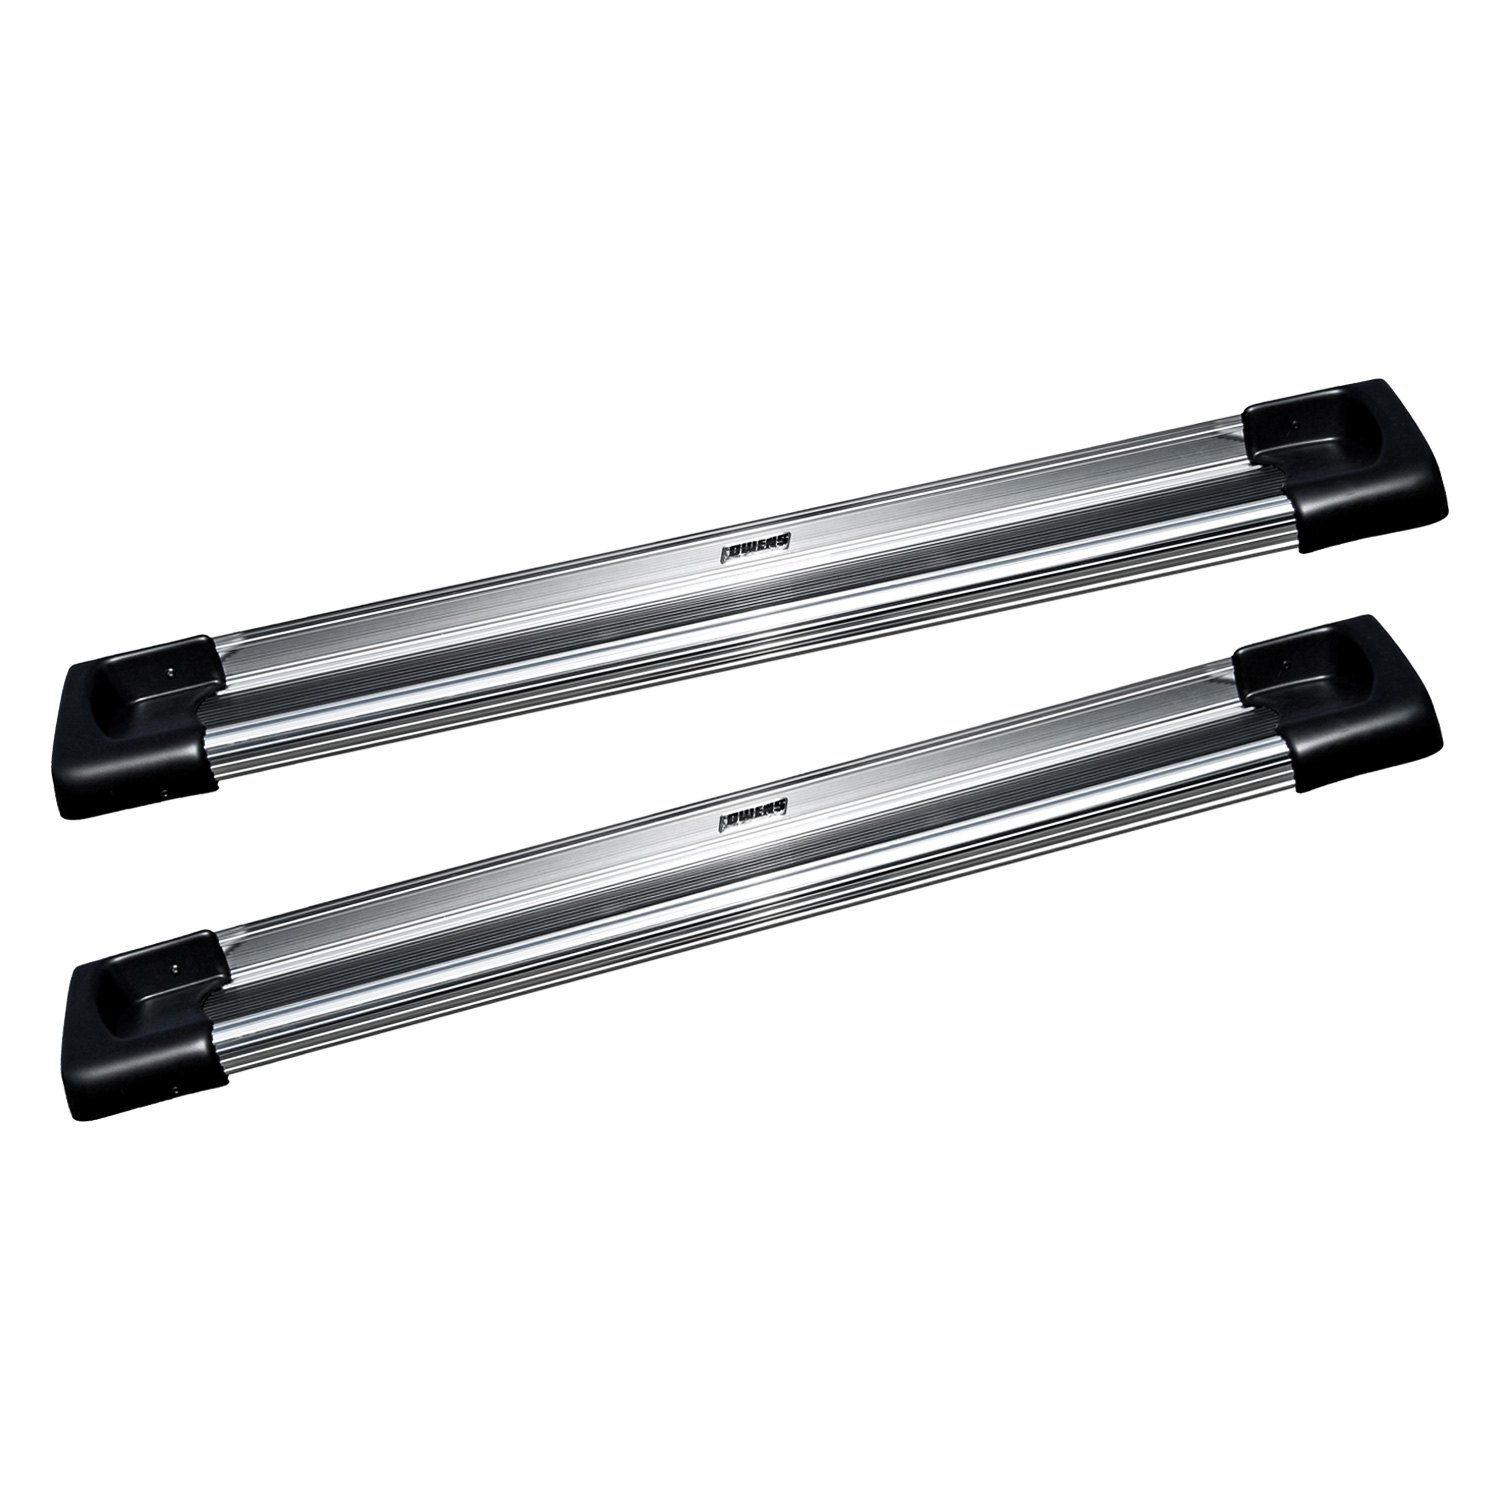 purchase Owens® - TranSender Chrome Running Boards 2017 for Car & Truck online